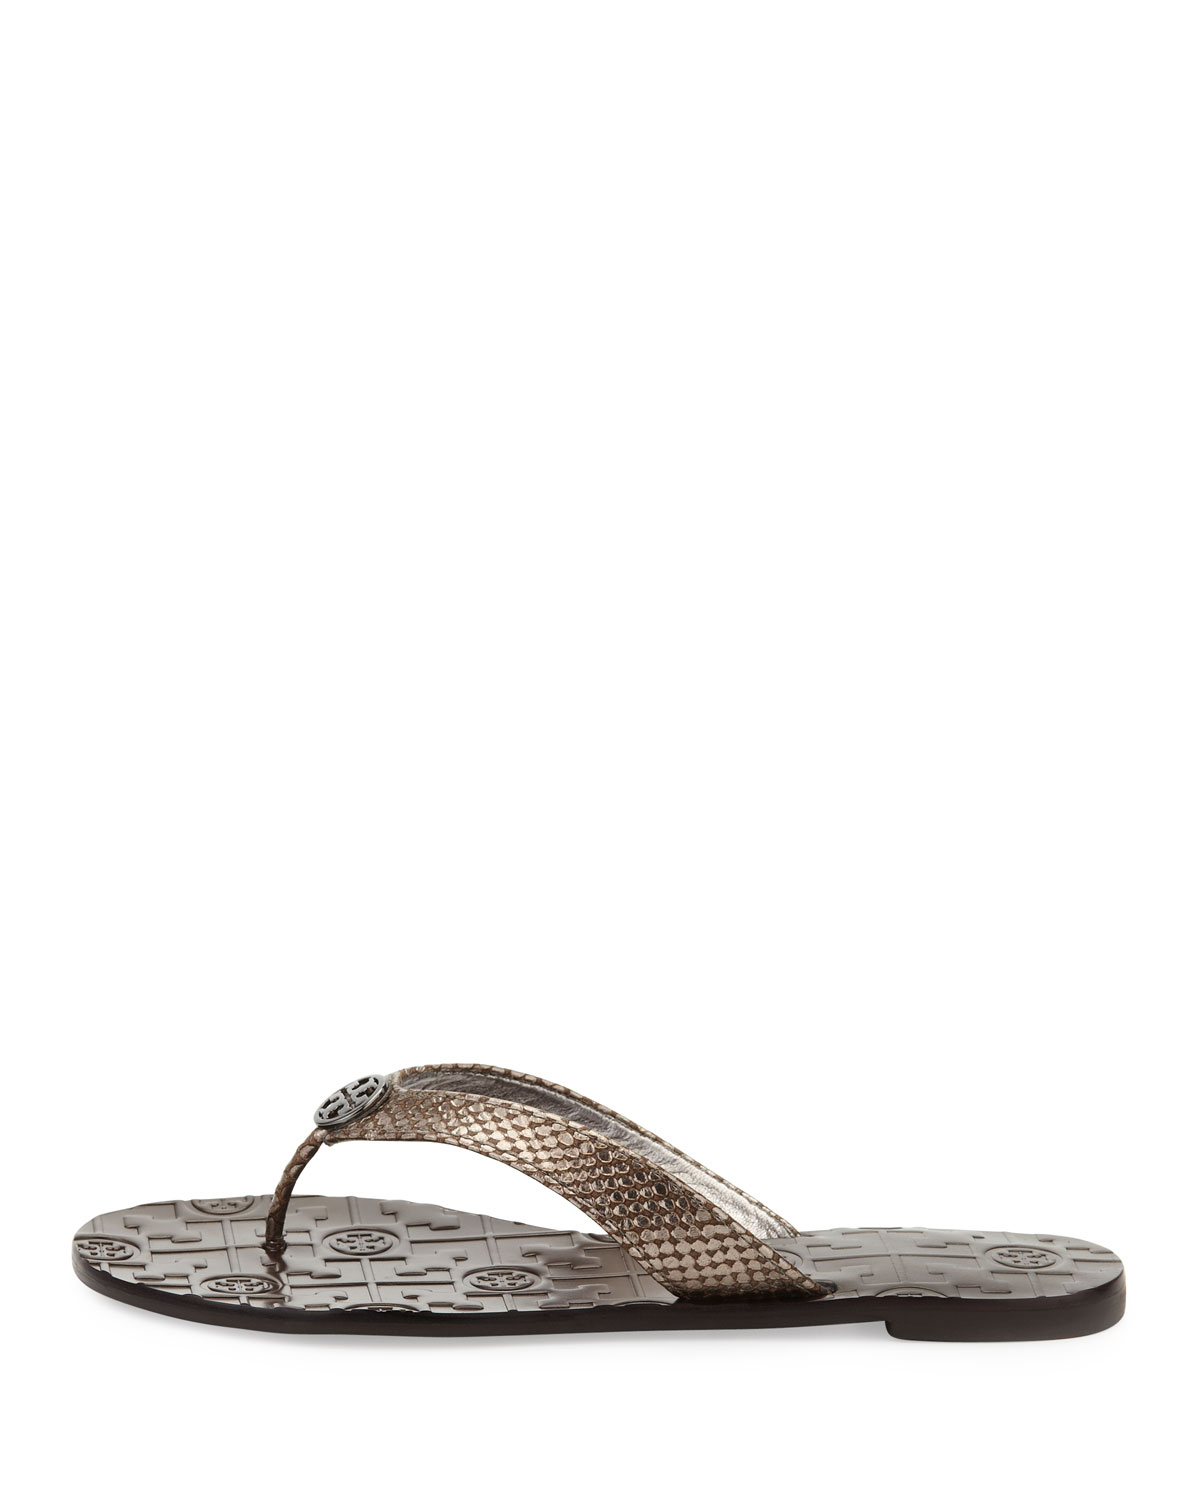 c9c91706ff14f Lyst - Tory Burch Thora Leather Snake-print Thong Sandal in Gray